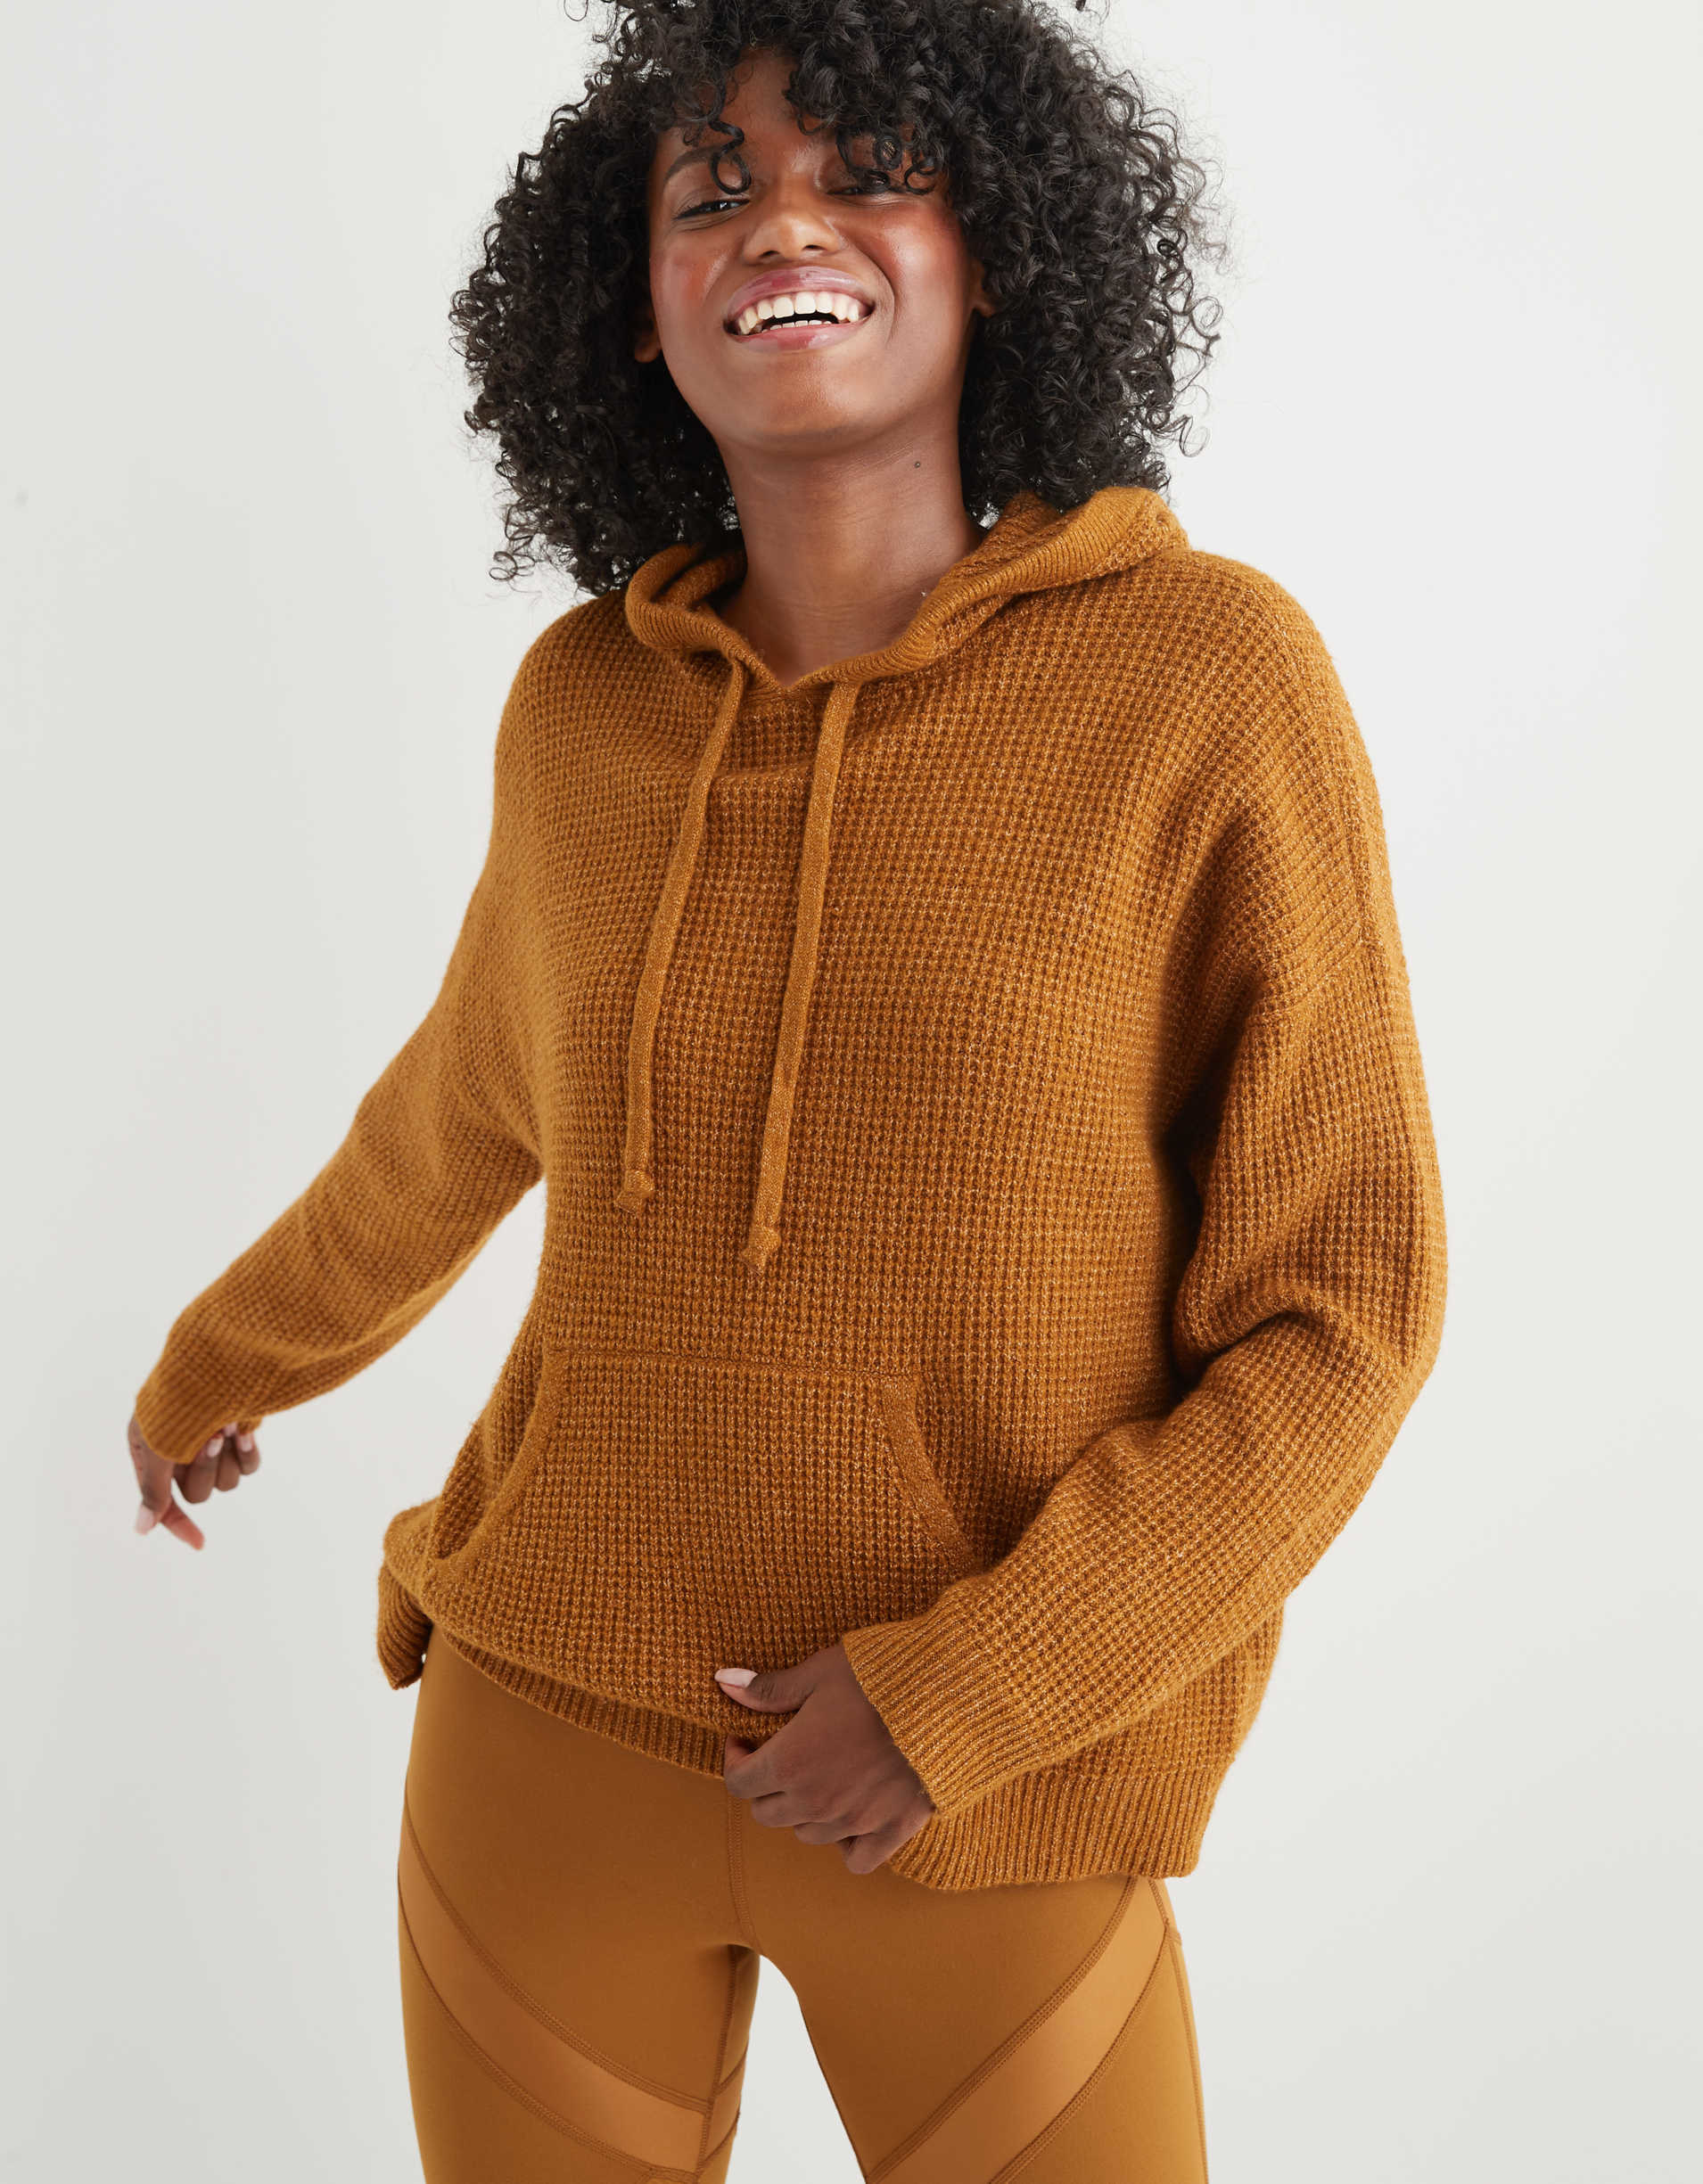 Model wearing the hooded sweatshirt with a drawstring and front pocket in mustard yellow